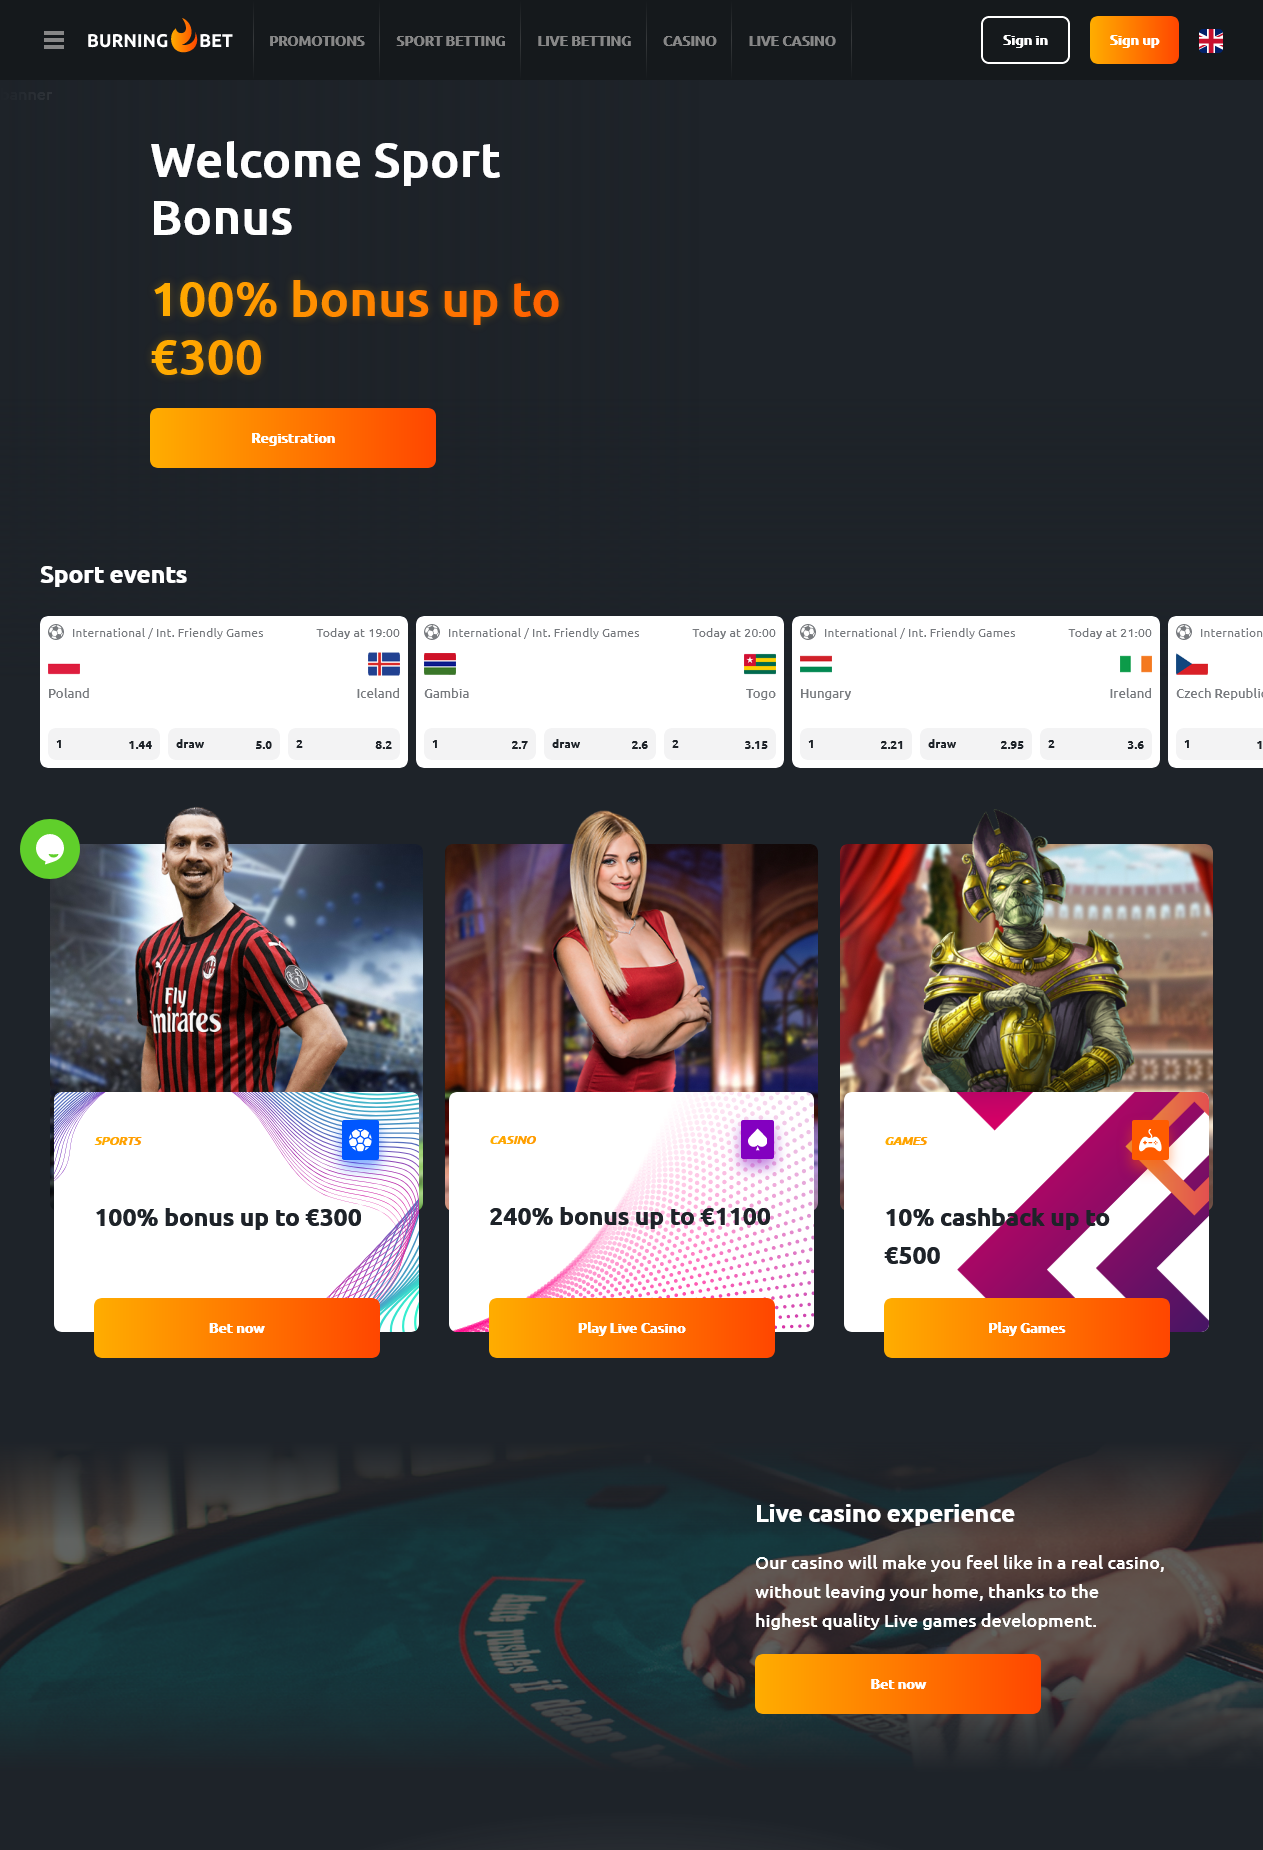 Burning Bet is an online casino and sports betting site